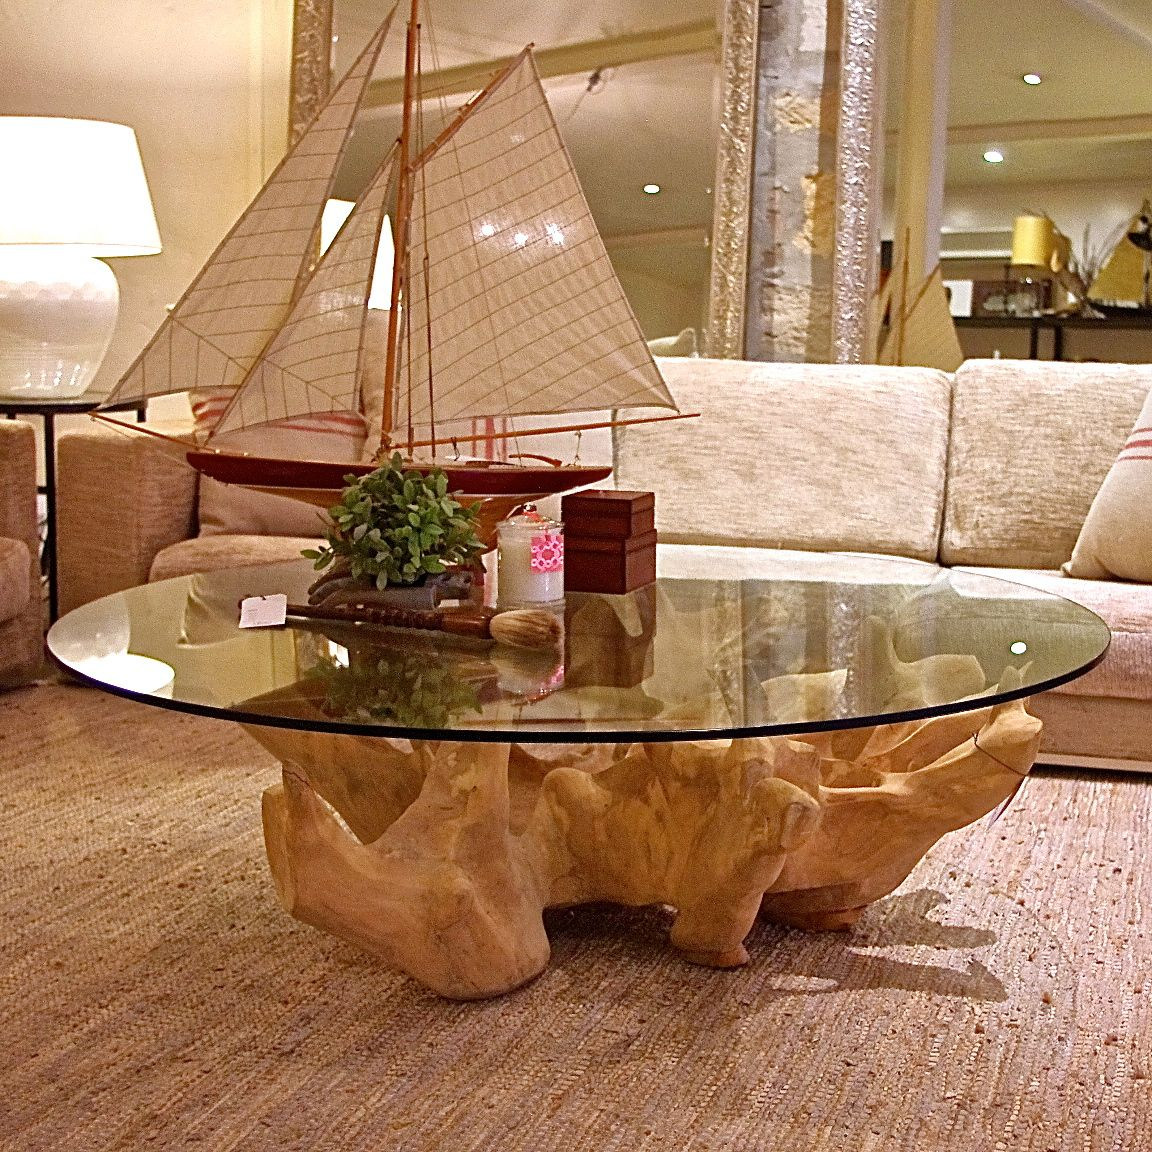 Gl Coffee Table With Tree Base Modern Clic Furniture Check More At Http Www Nikkitsfun